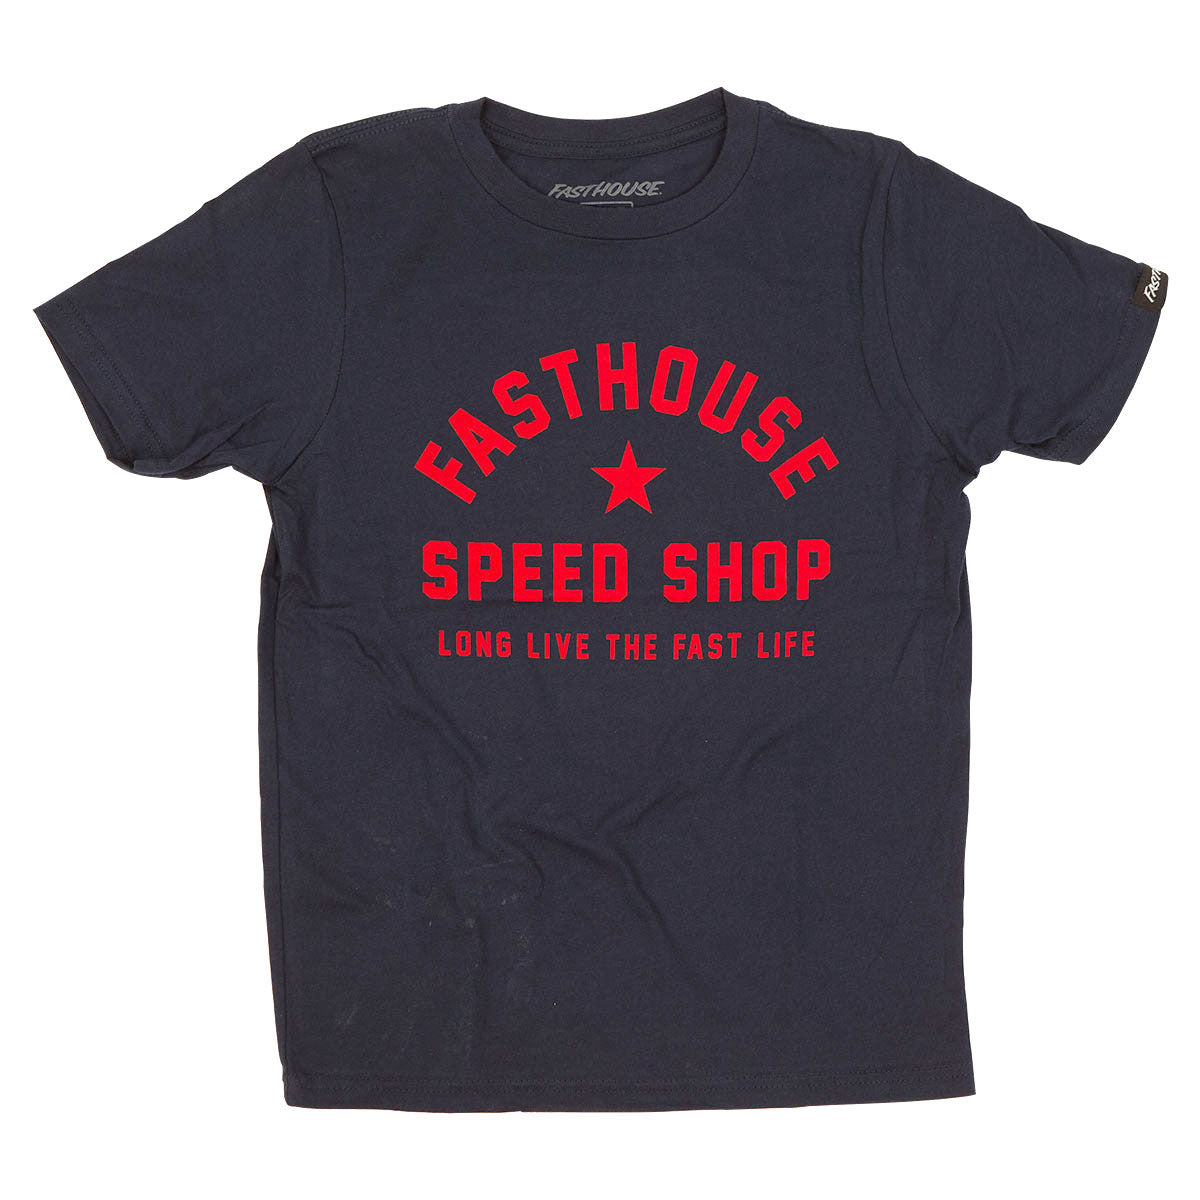 Too Easy Youth Tee - Navy